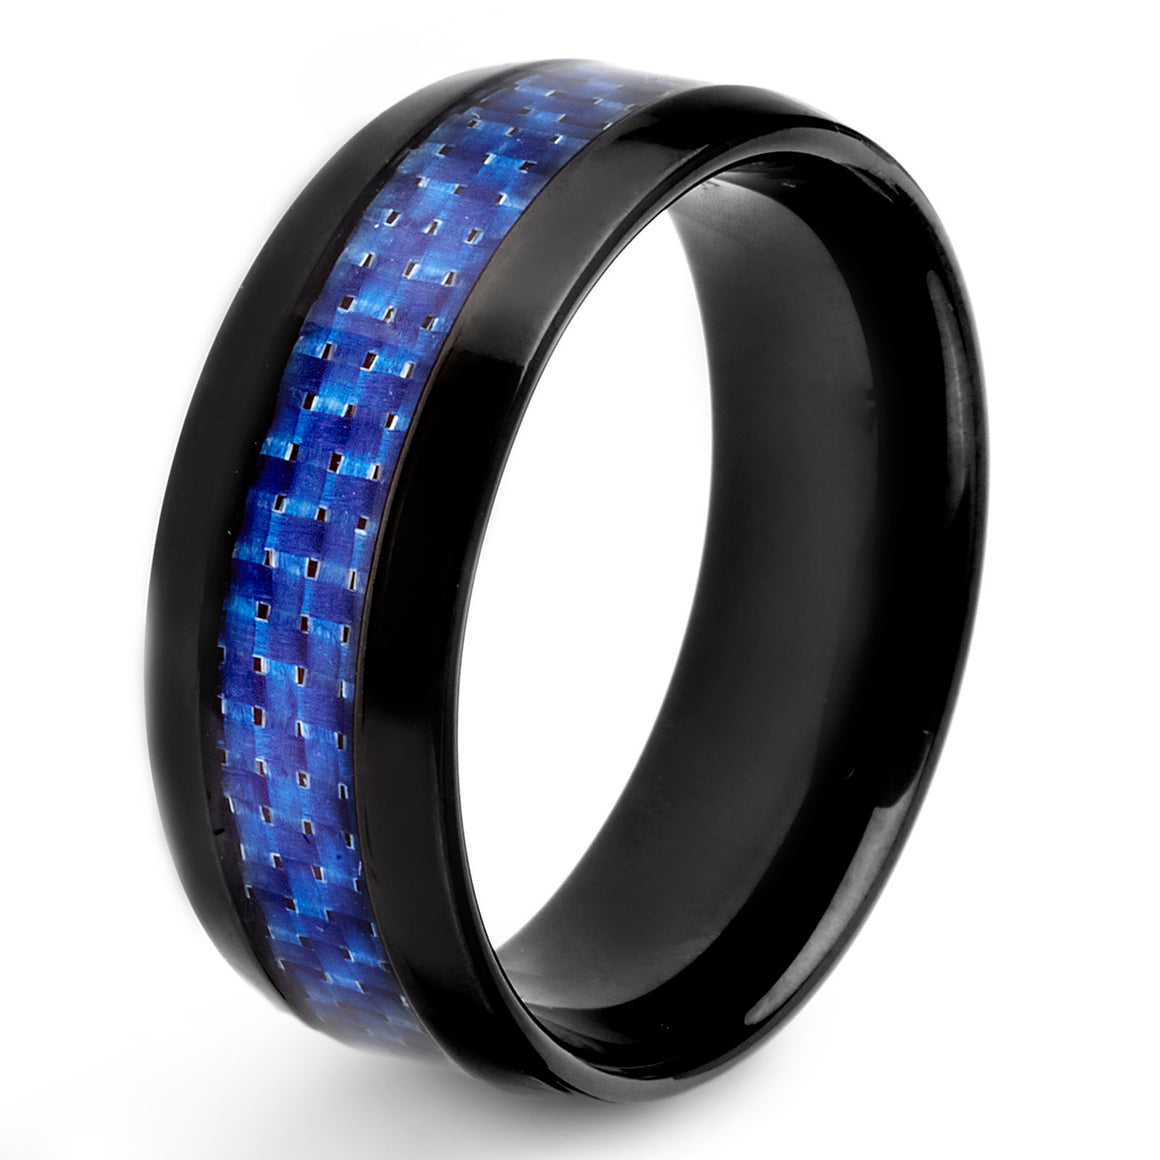 Crucible Men's Stainless Steel High Polished Blue Carbon Fiber Inlay Ring